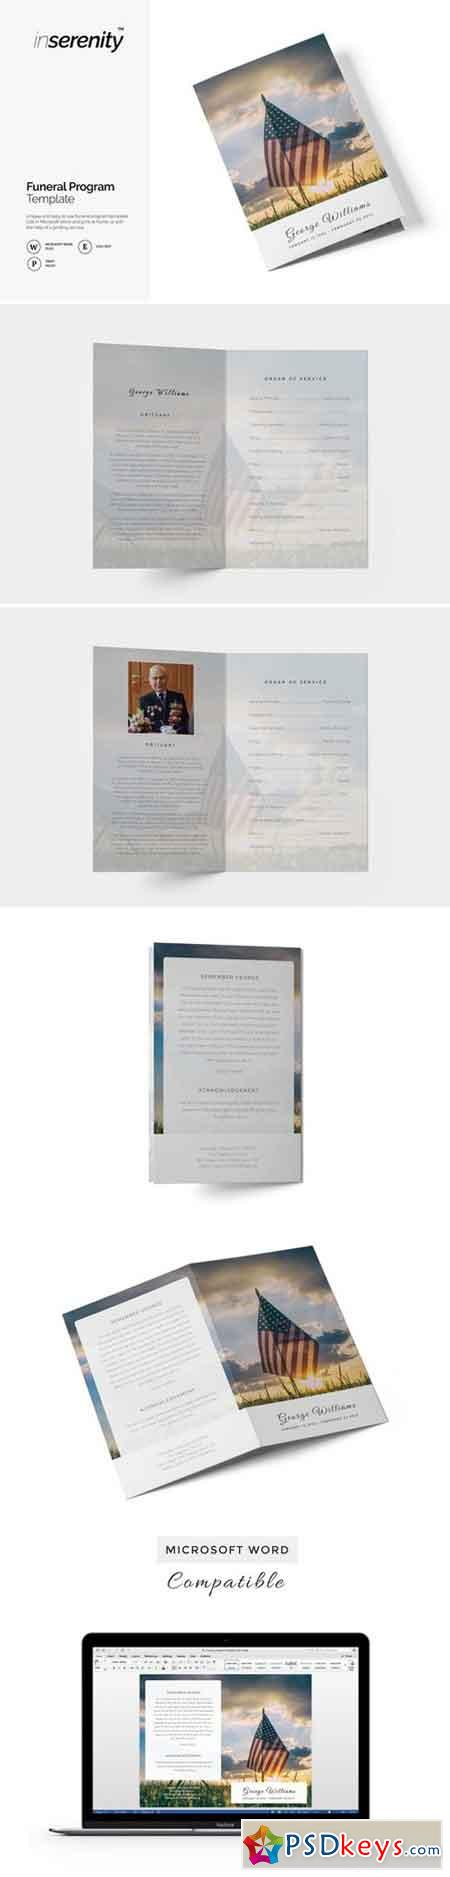 Military funeral program template 1825903